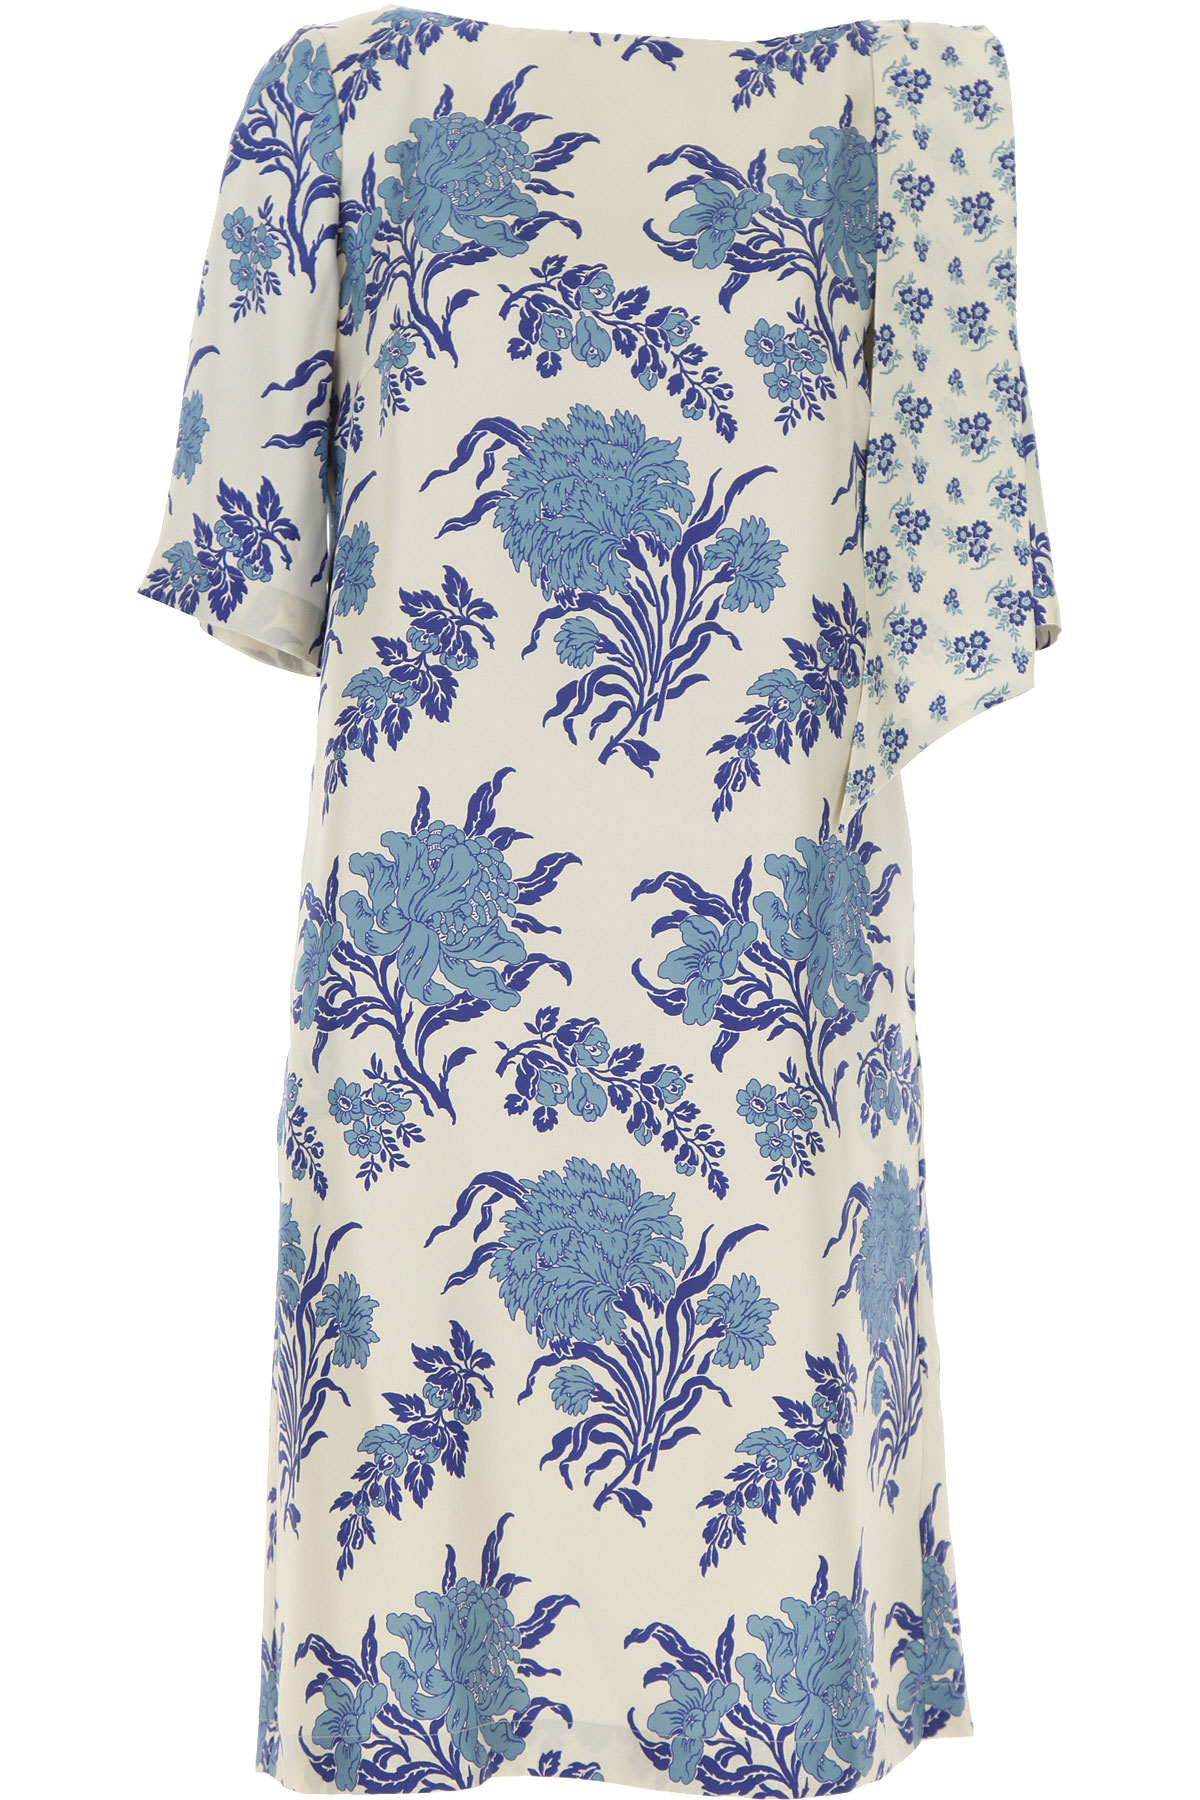 Antonio Marras Dress for Women, Evening Cocktail Party On Sale, Ivory, Silk, 2019, 1 (S - 40/42) 2 (M - 42/44) 3 (L - 44/46)